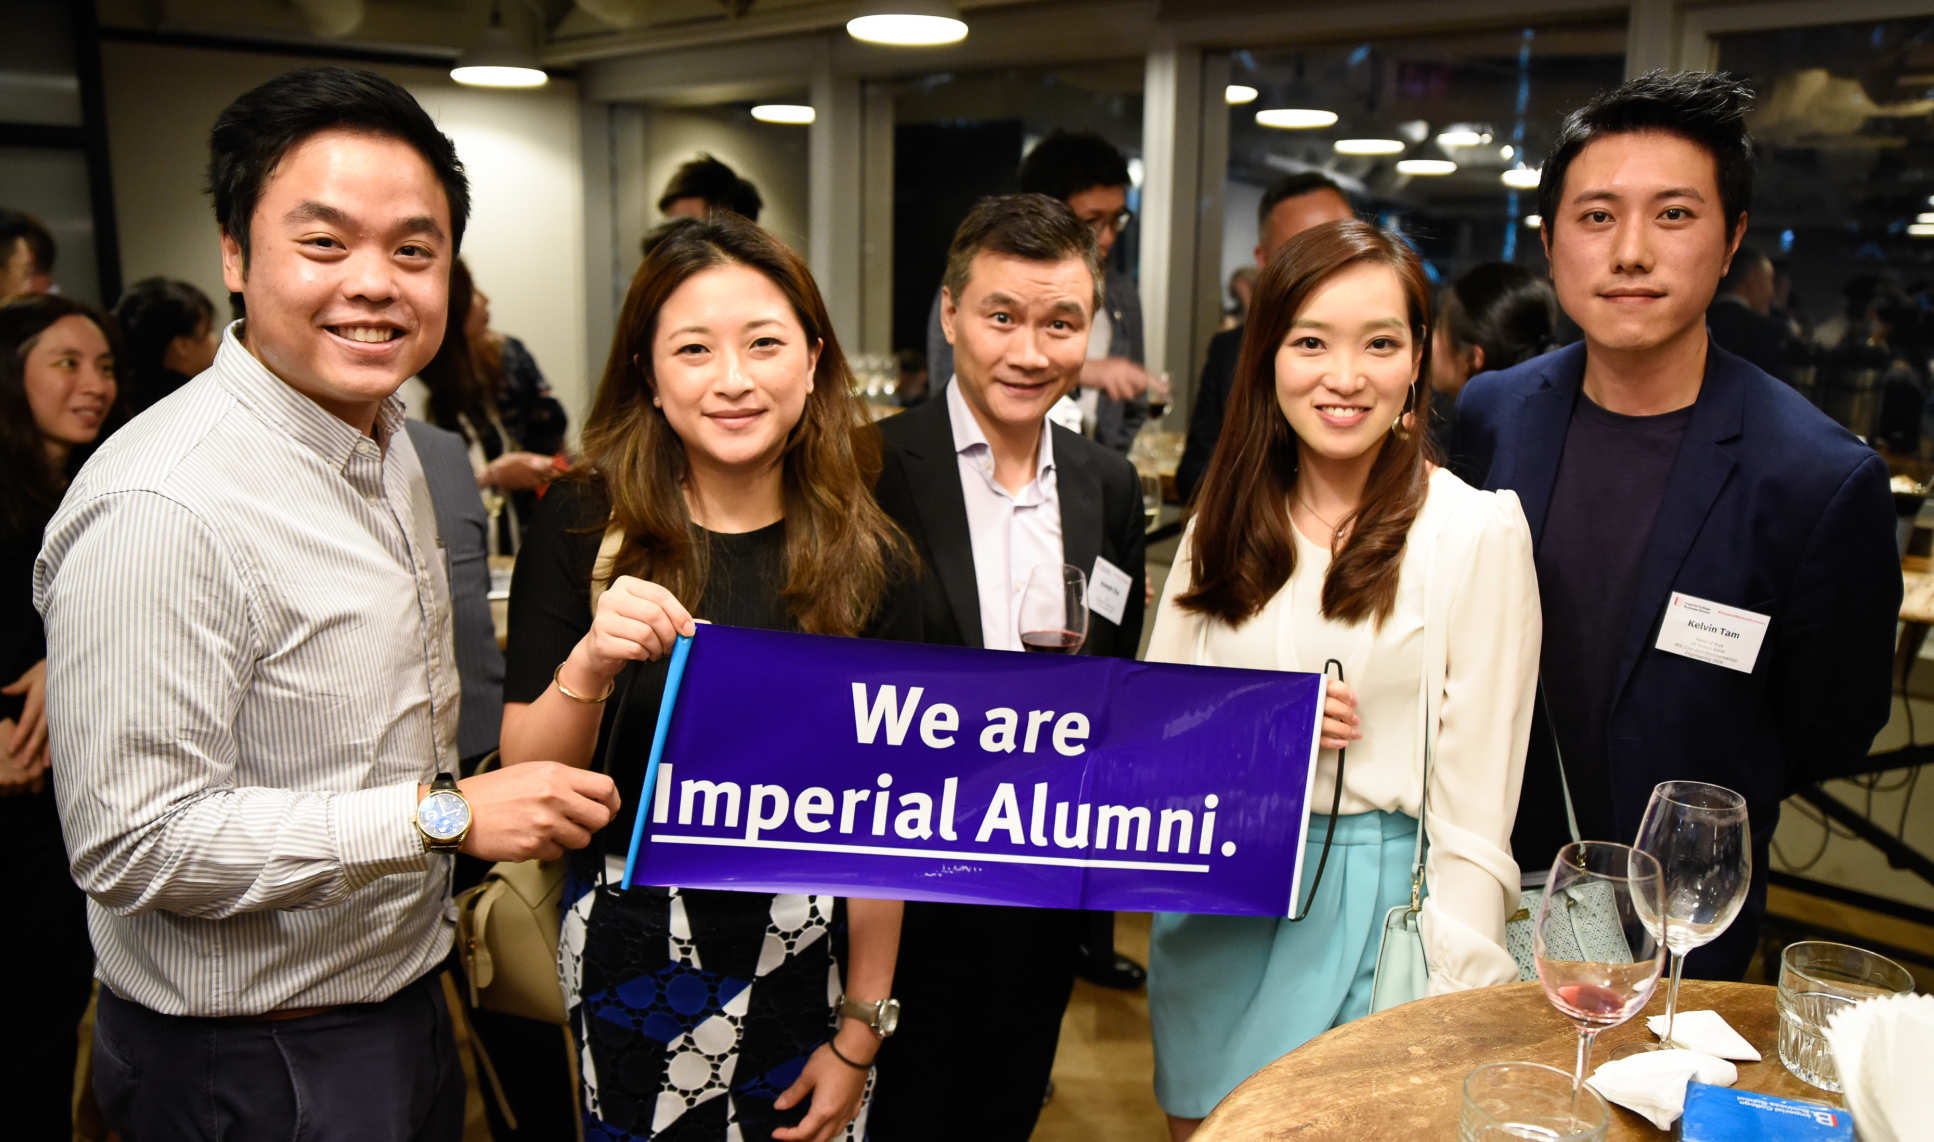 More than 80 alumni attended the event in Hong Kong